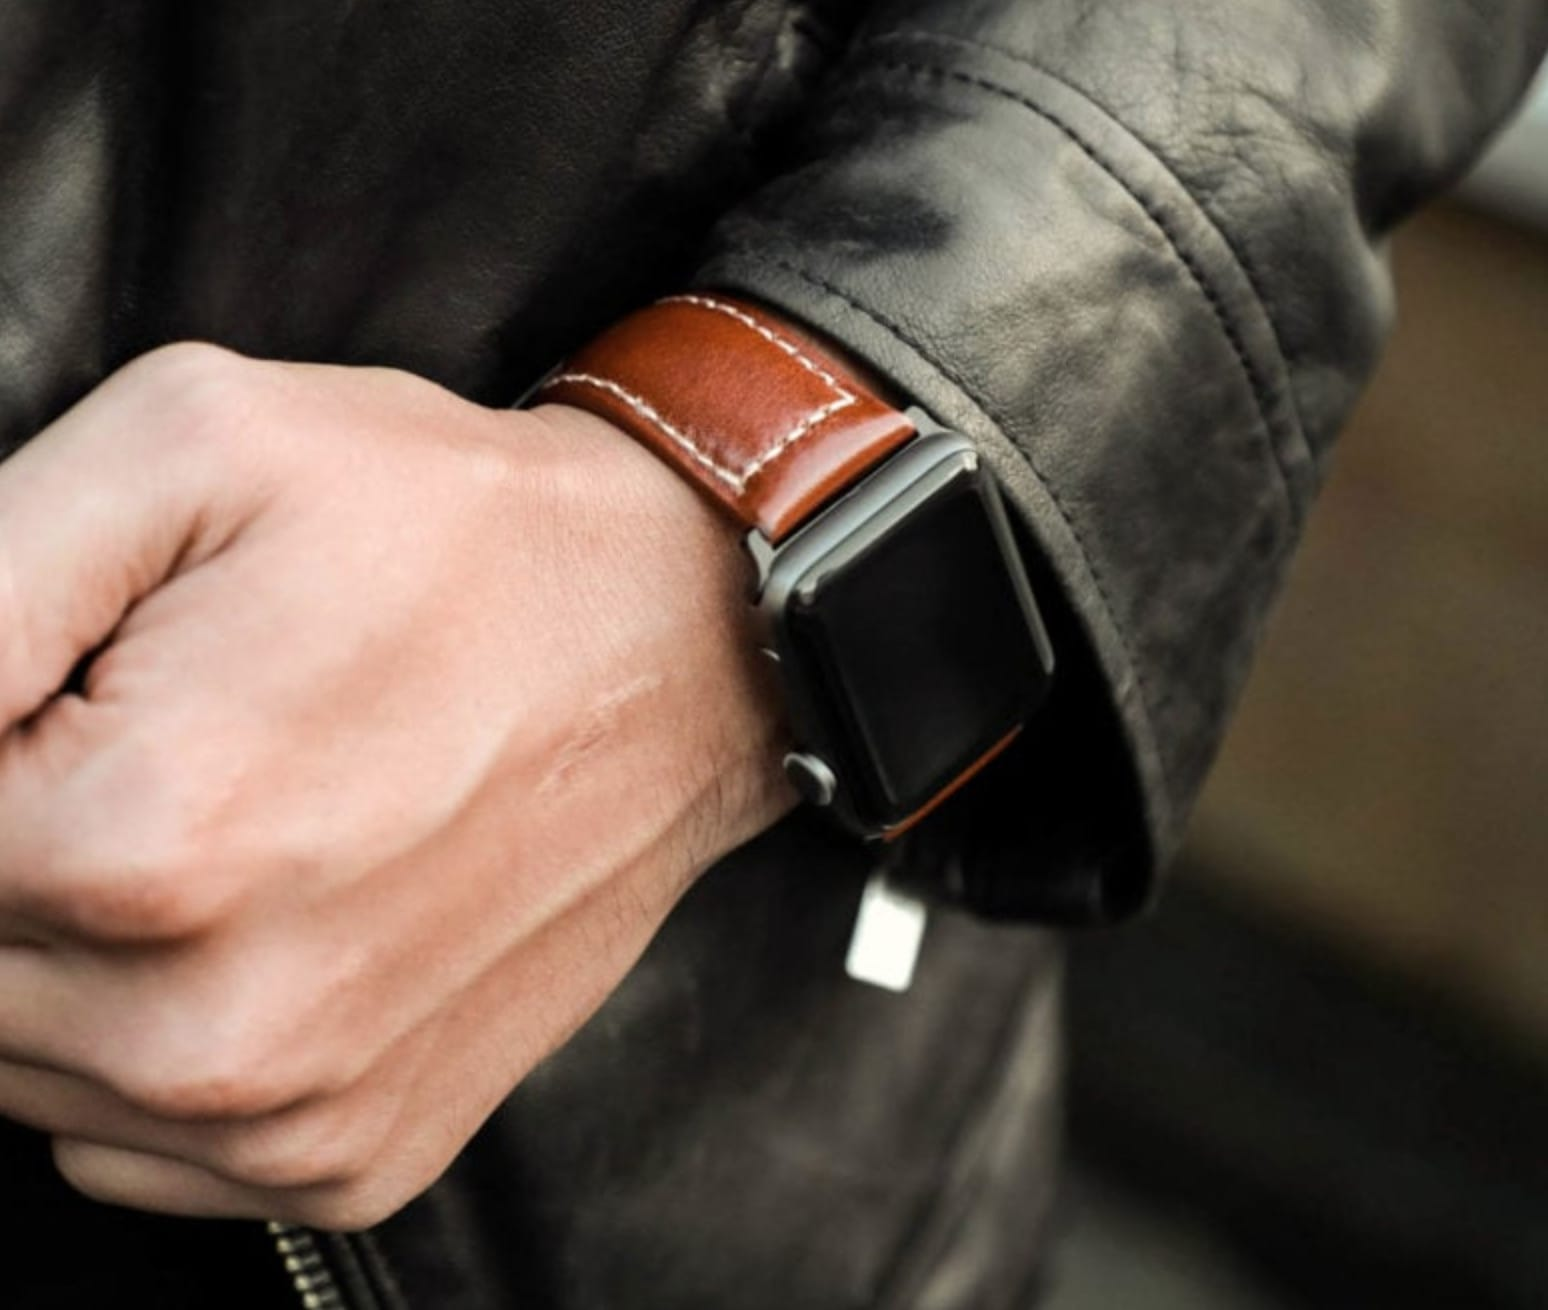 Strapa's Primus is made from rugged and subtly glossy Italian leather, expertly crafted into an exceptional watch band worthy of your Apple Watch Series 4.